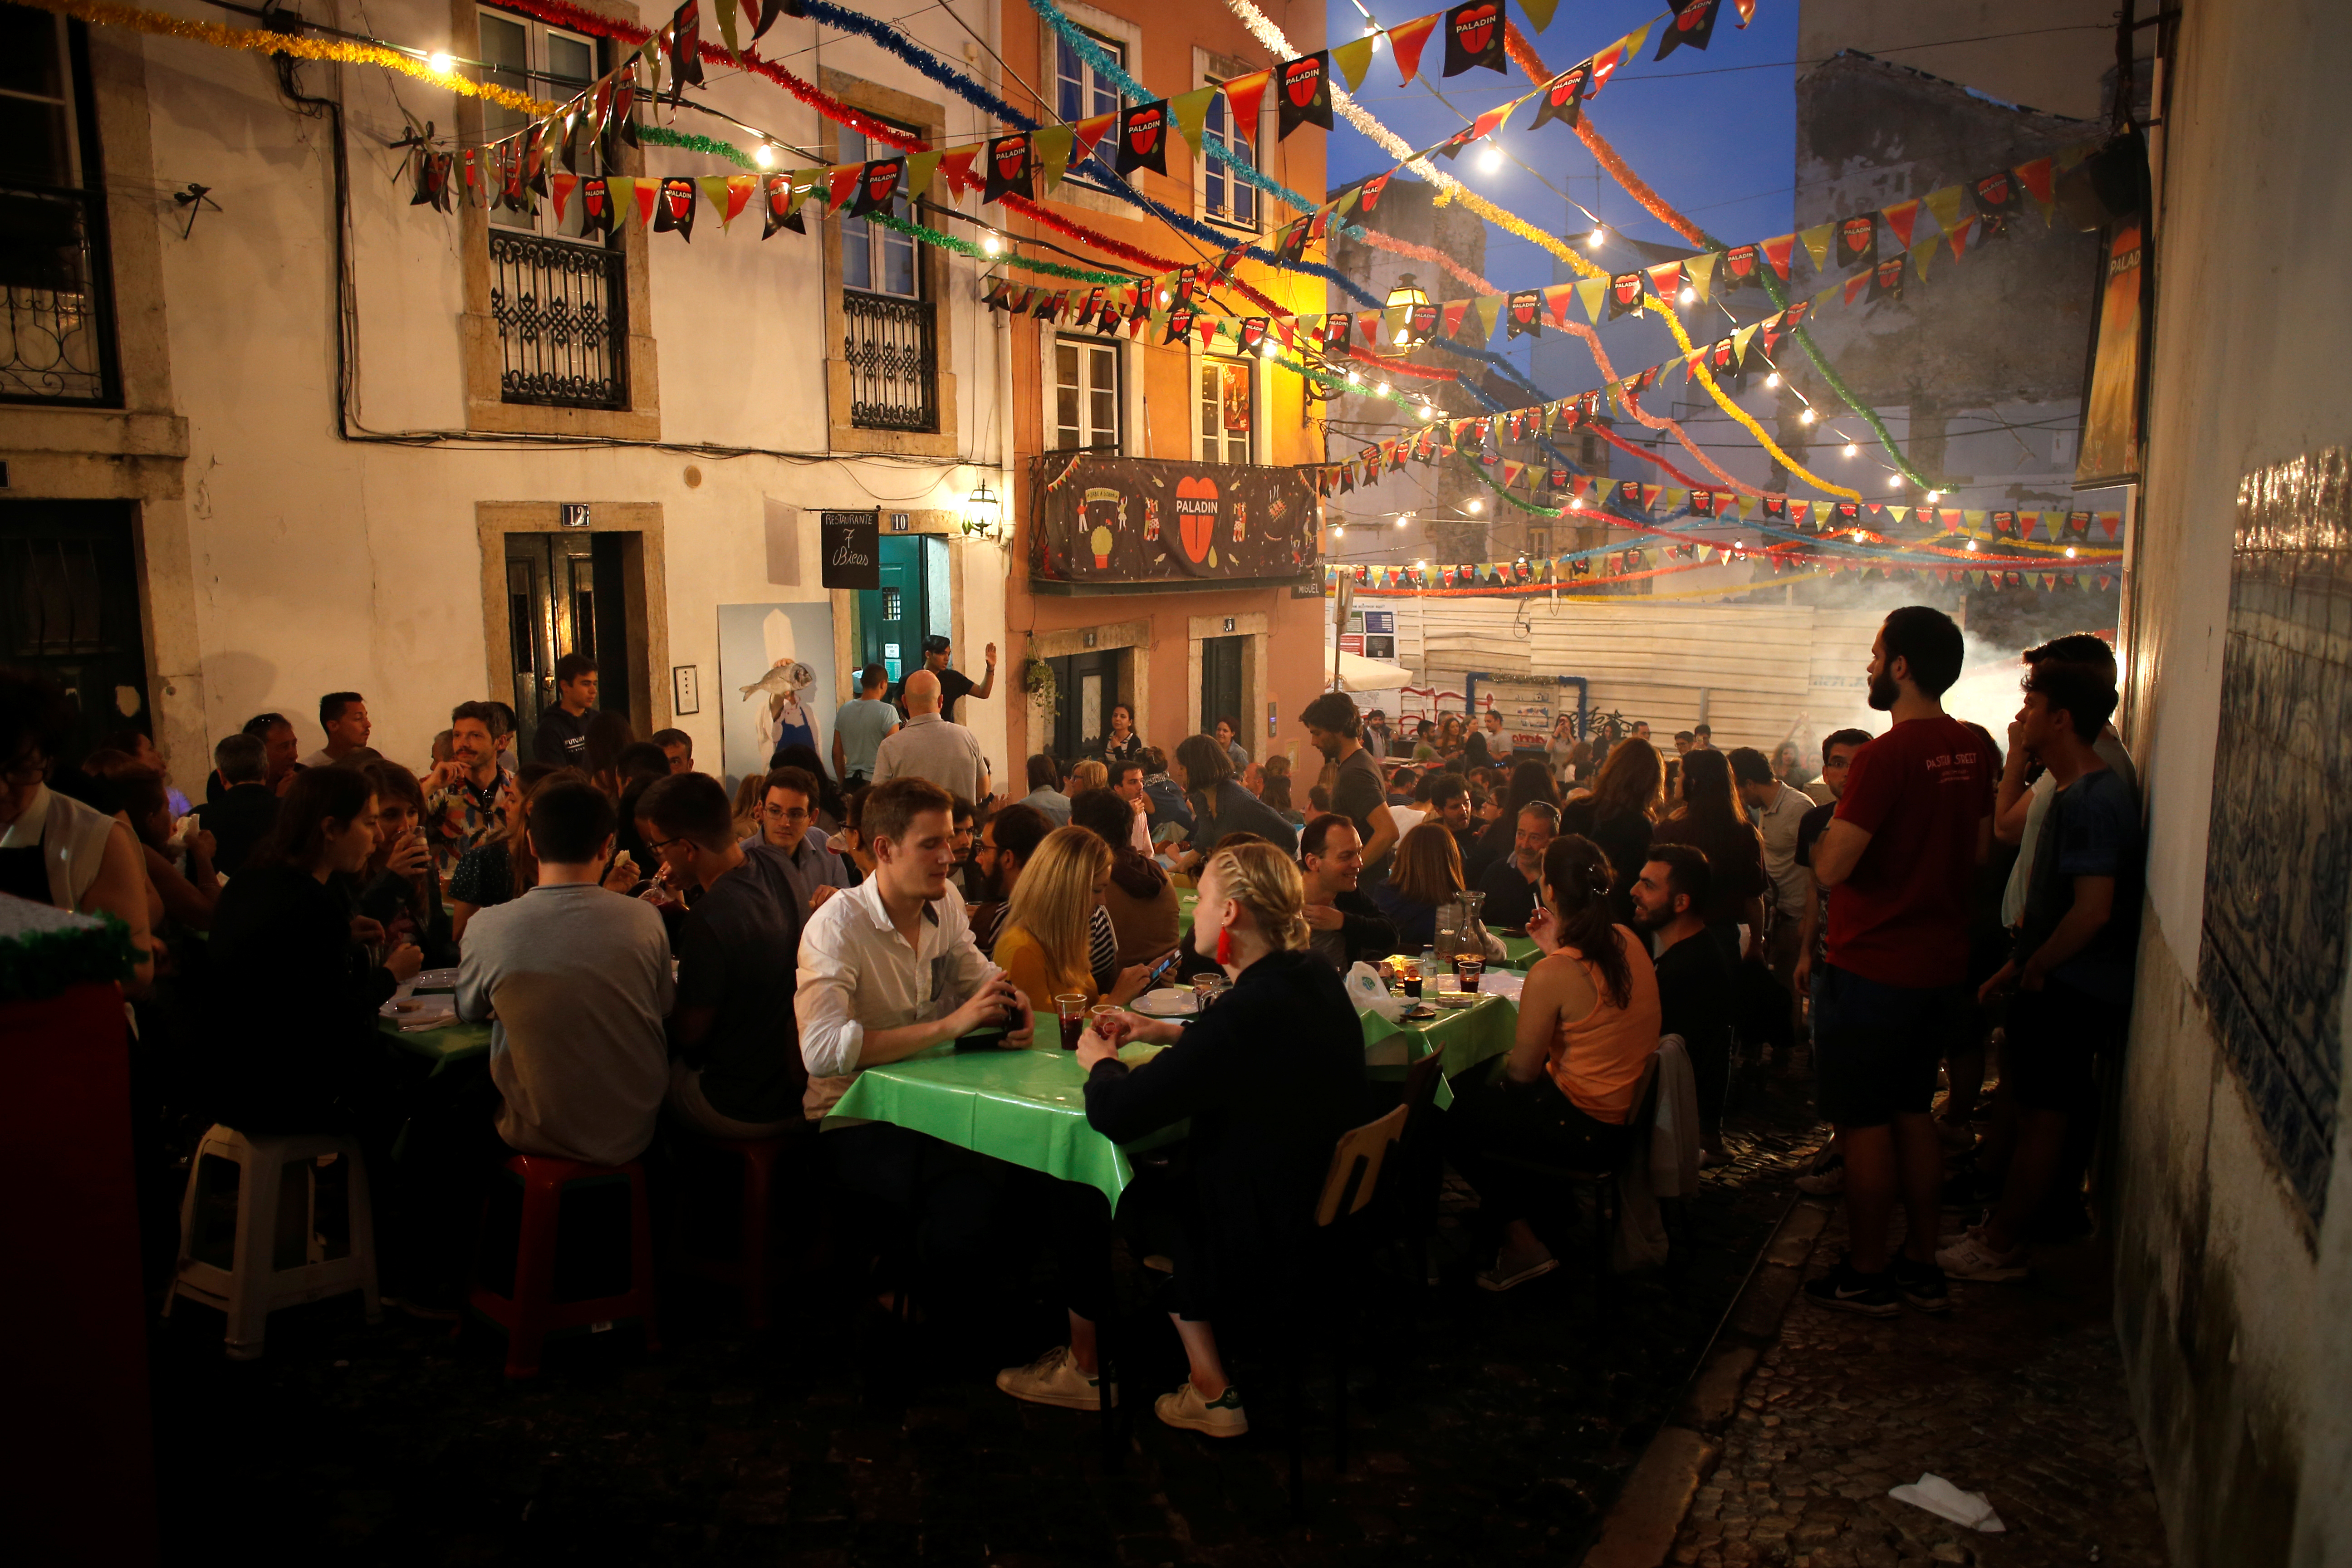 People sit outside in the Alfama neighborhood during the Festival of Popular Saints in Lisbon, Portugal, June 16, 2018.